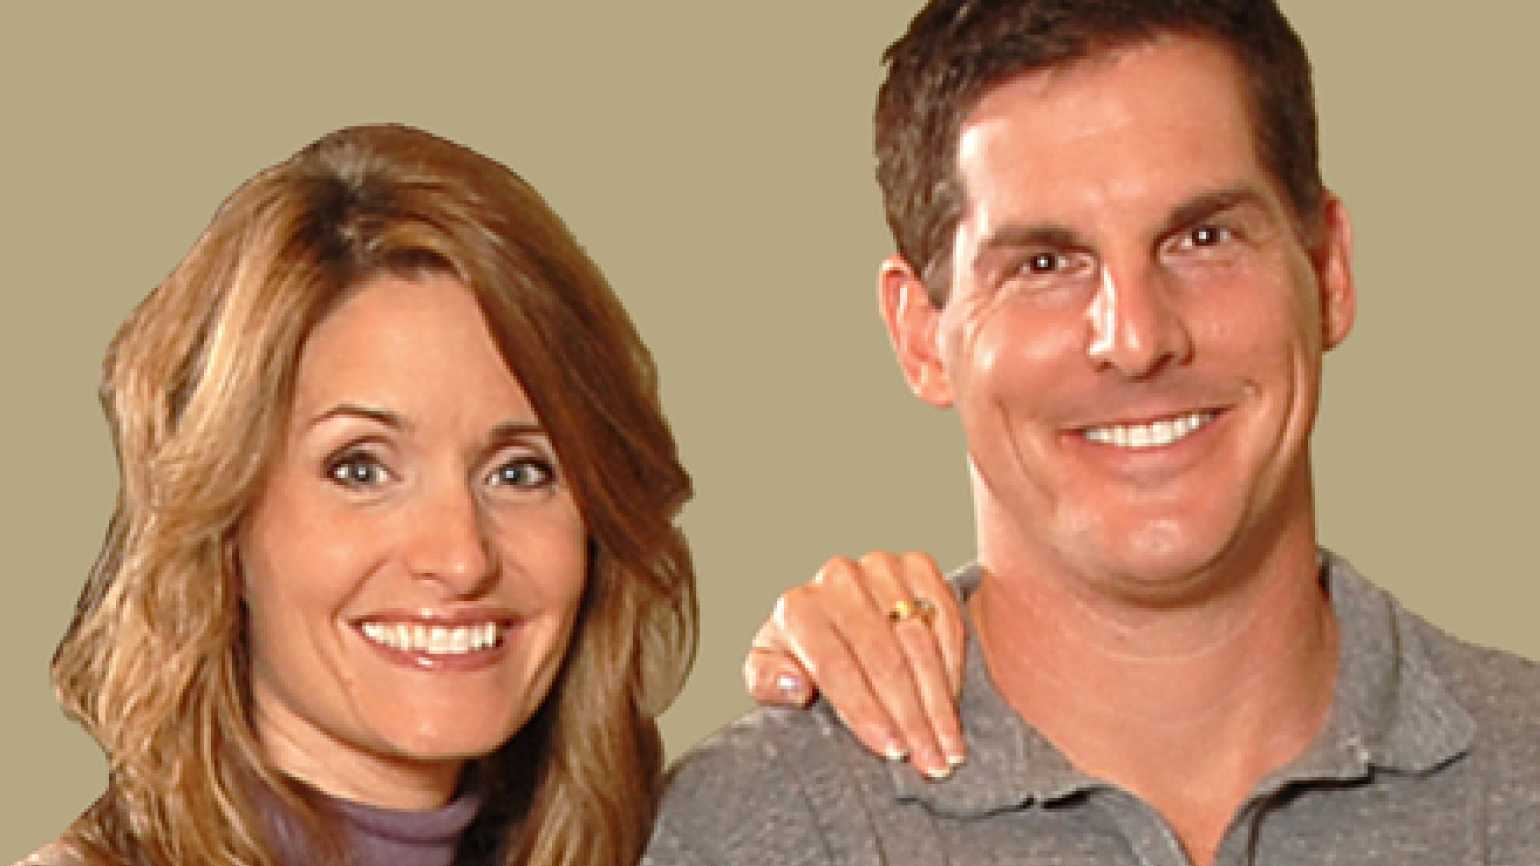 Craig Groeschel and his wife, Amy